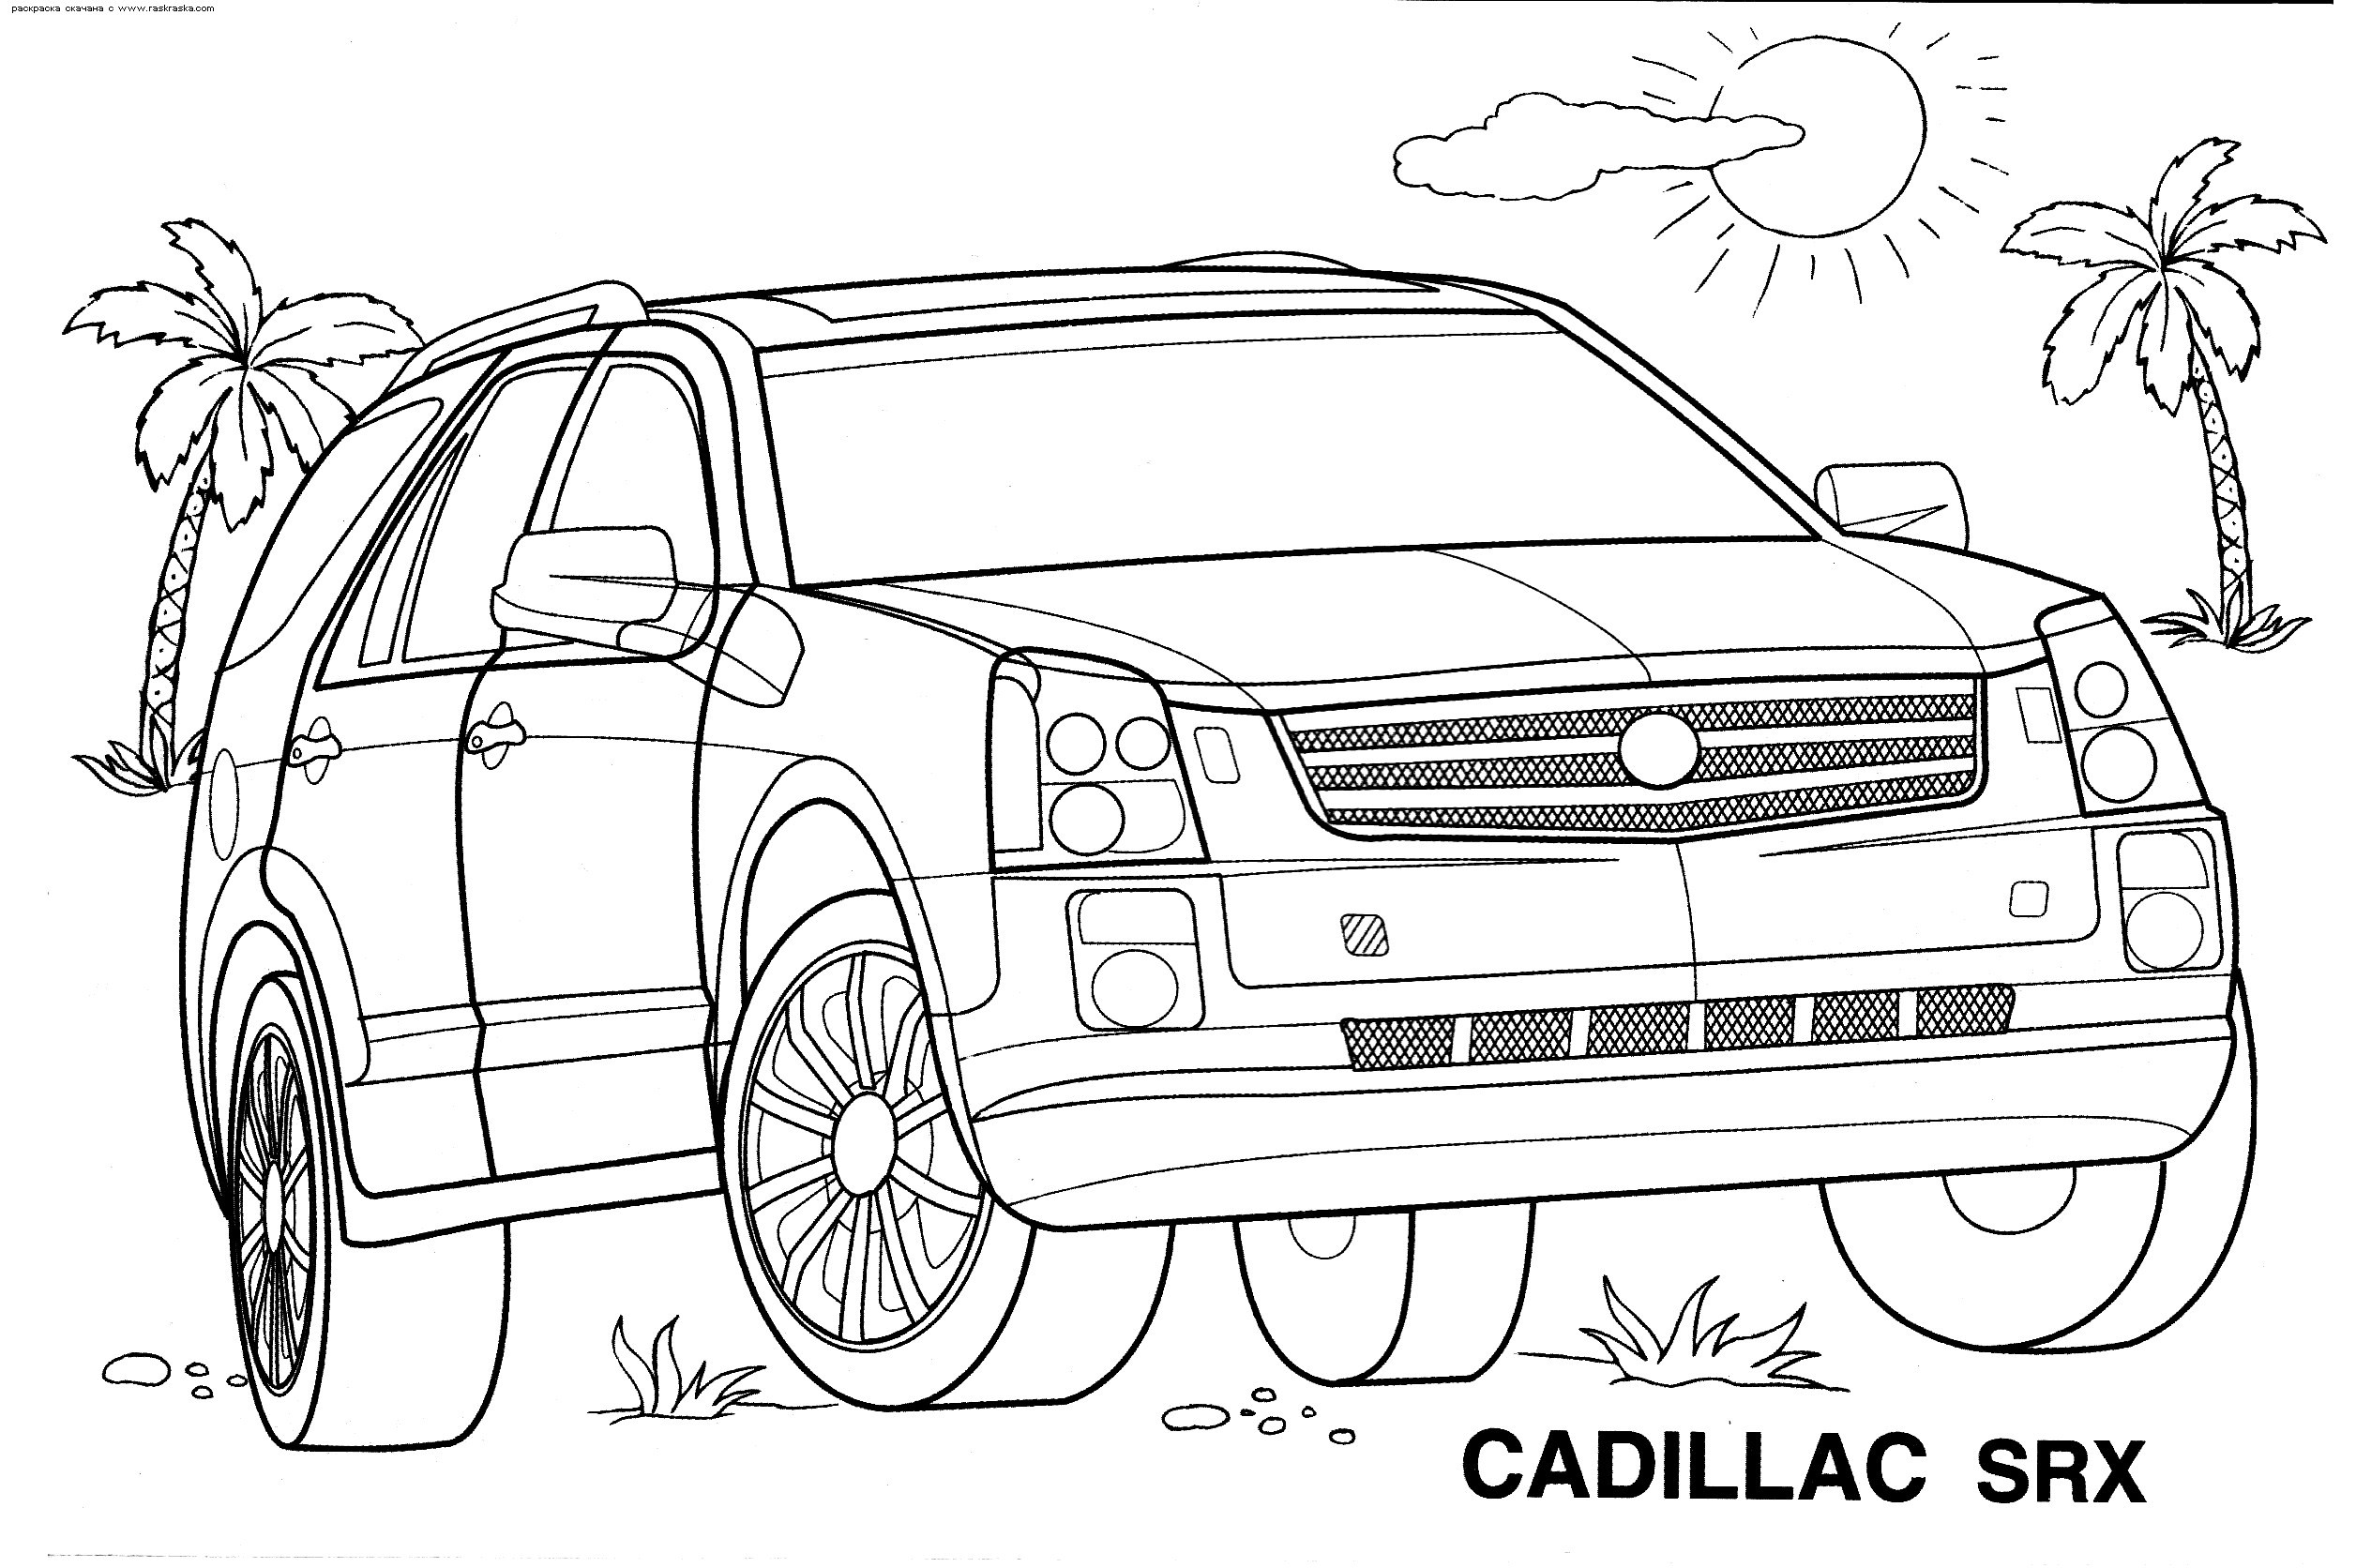 barbie car coloring pages barbie car coloring pages bubakidscom pages coloring barbie car